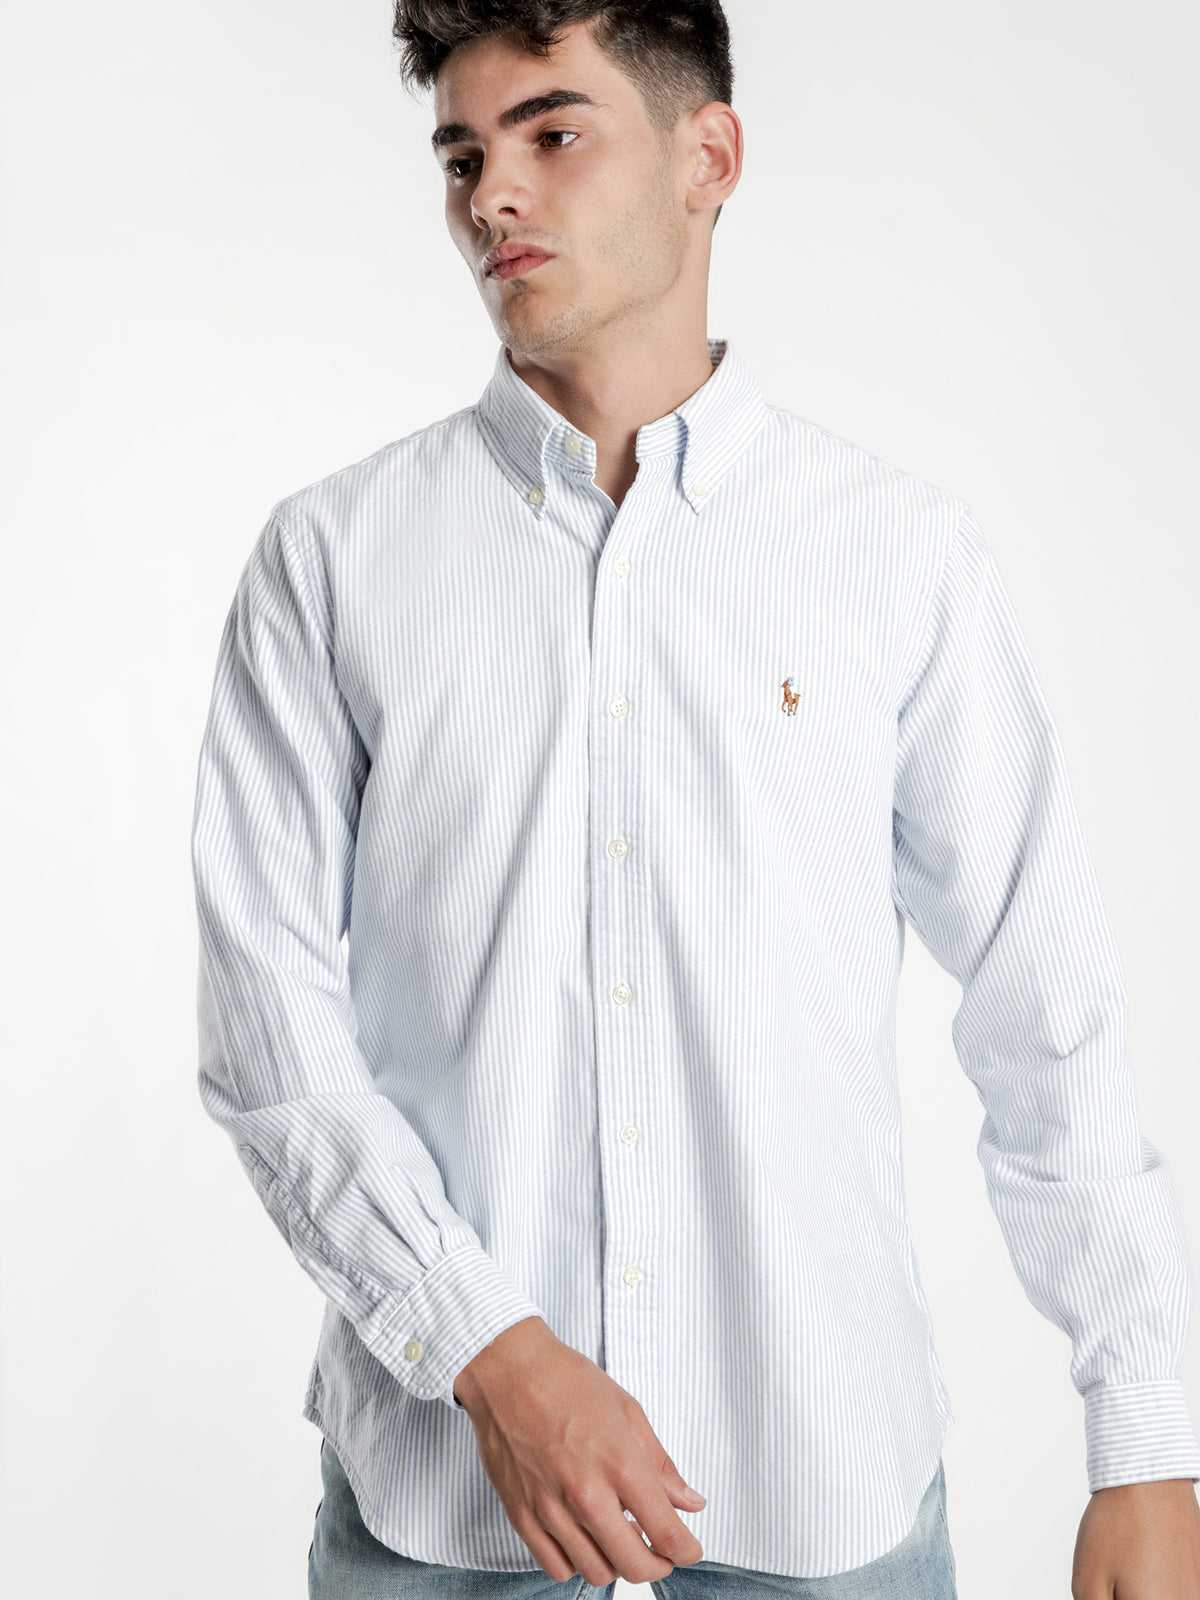 Standard Fit Oxford Sport Shirt in Blue & White Stripe